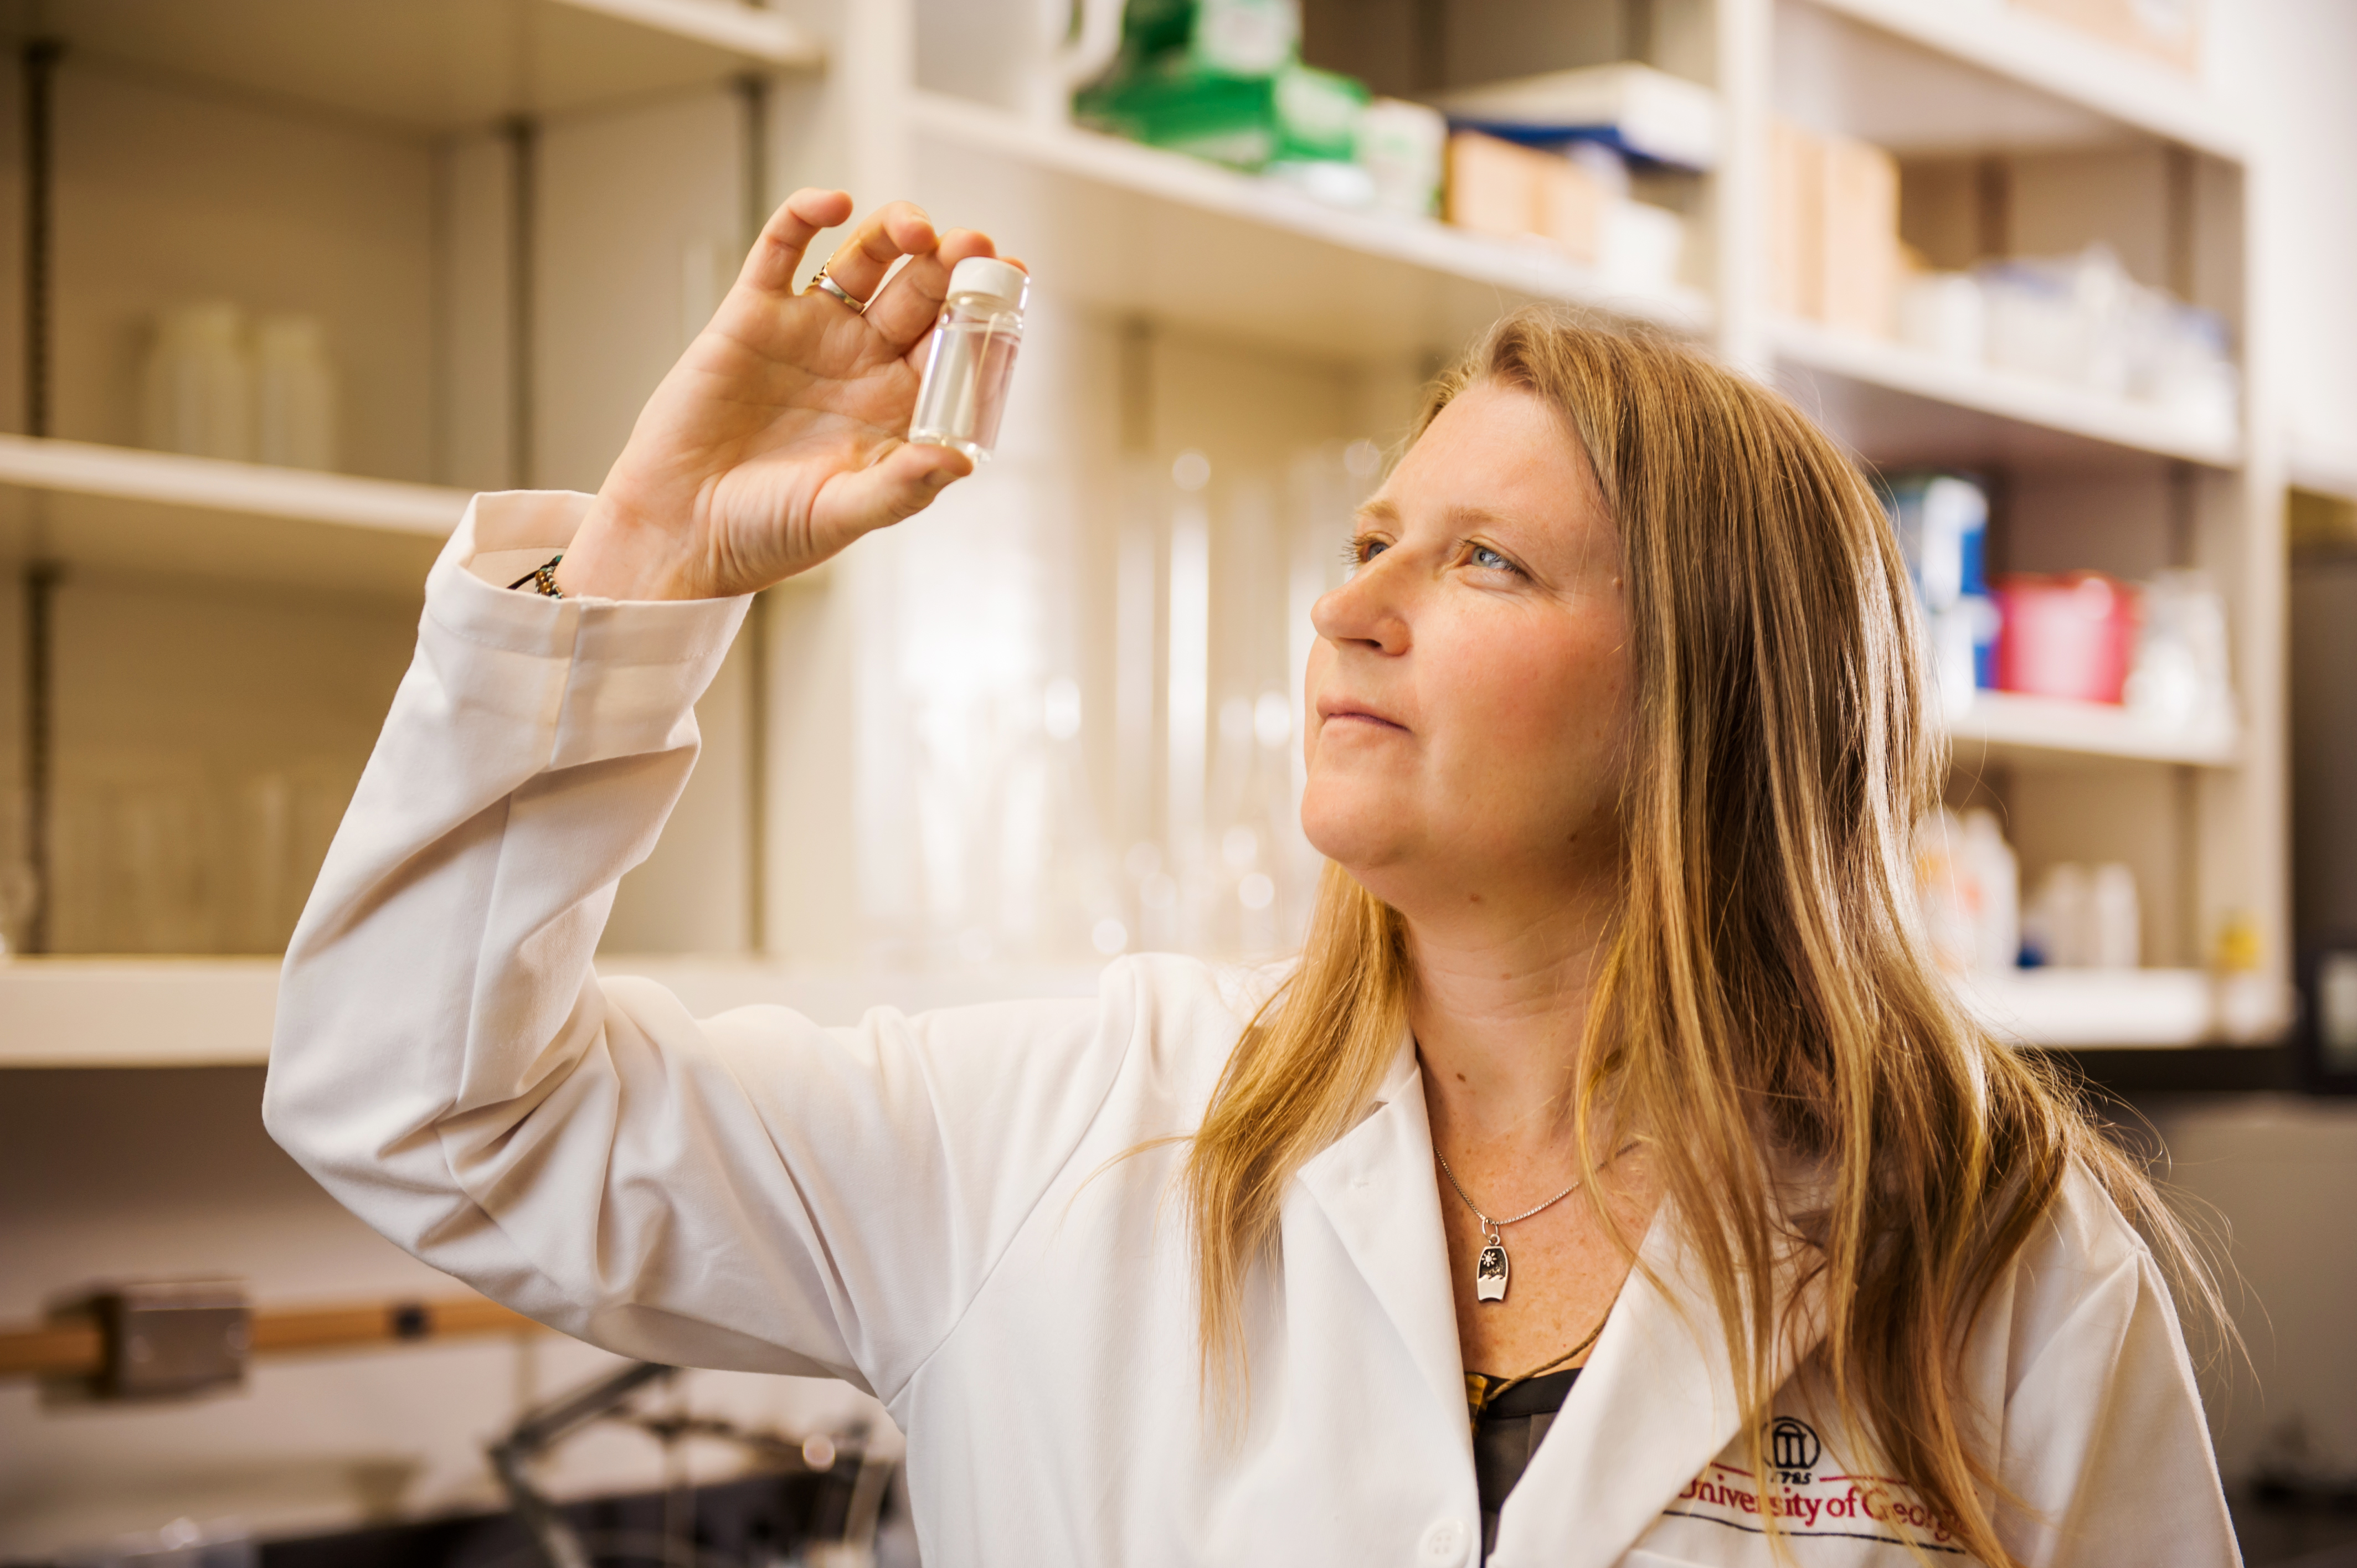 Associate professor of engineering Jenna Jambeck is one of the world's foremost experts on microplastic pollution in the oceans.